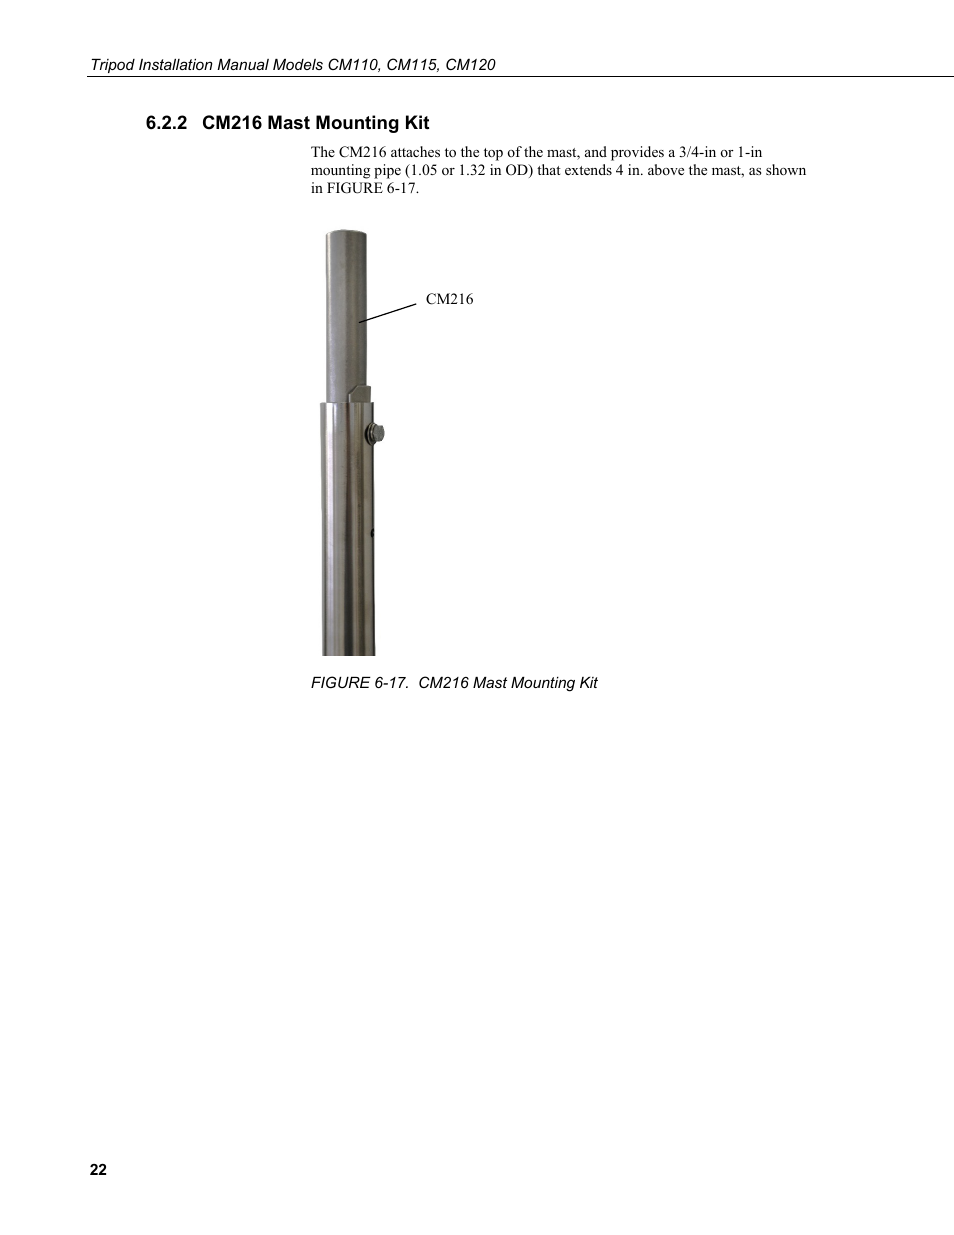 2 cm216 mast mounting kit, Cm216 mast mounting kit, 17. cm216 mast mounting kit | Campbell Scientific CM110, CM115, CM120 Tripod Installation User Manual | Page 30 / 40